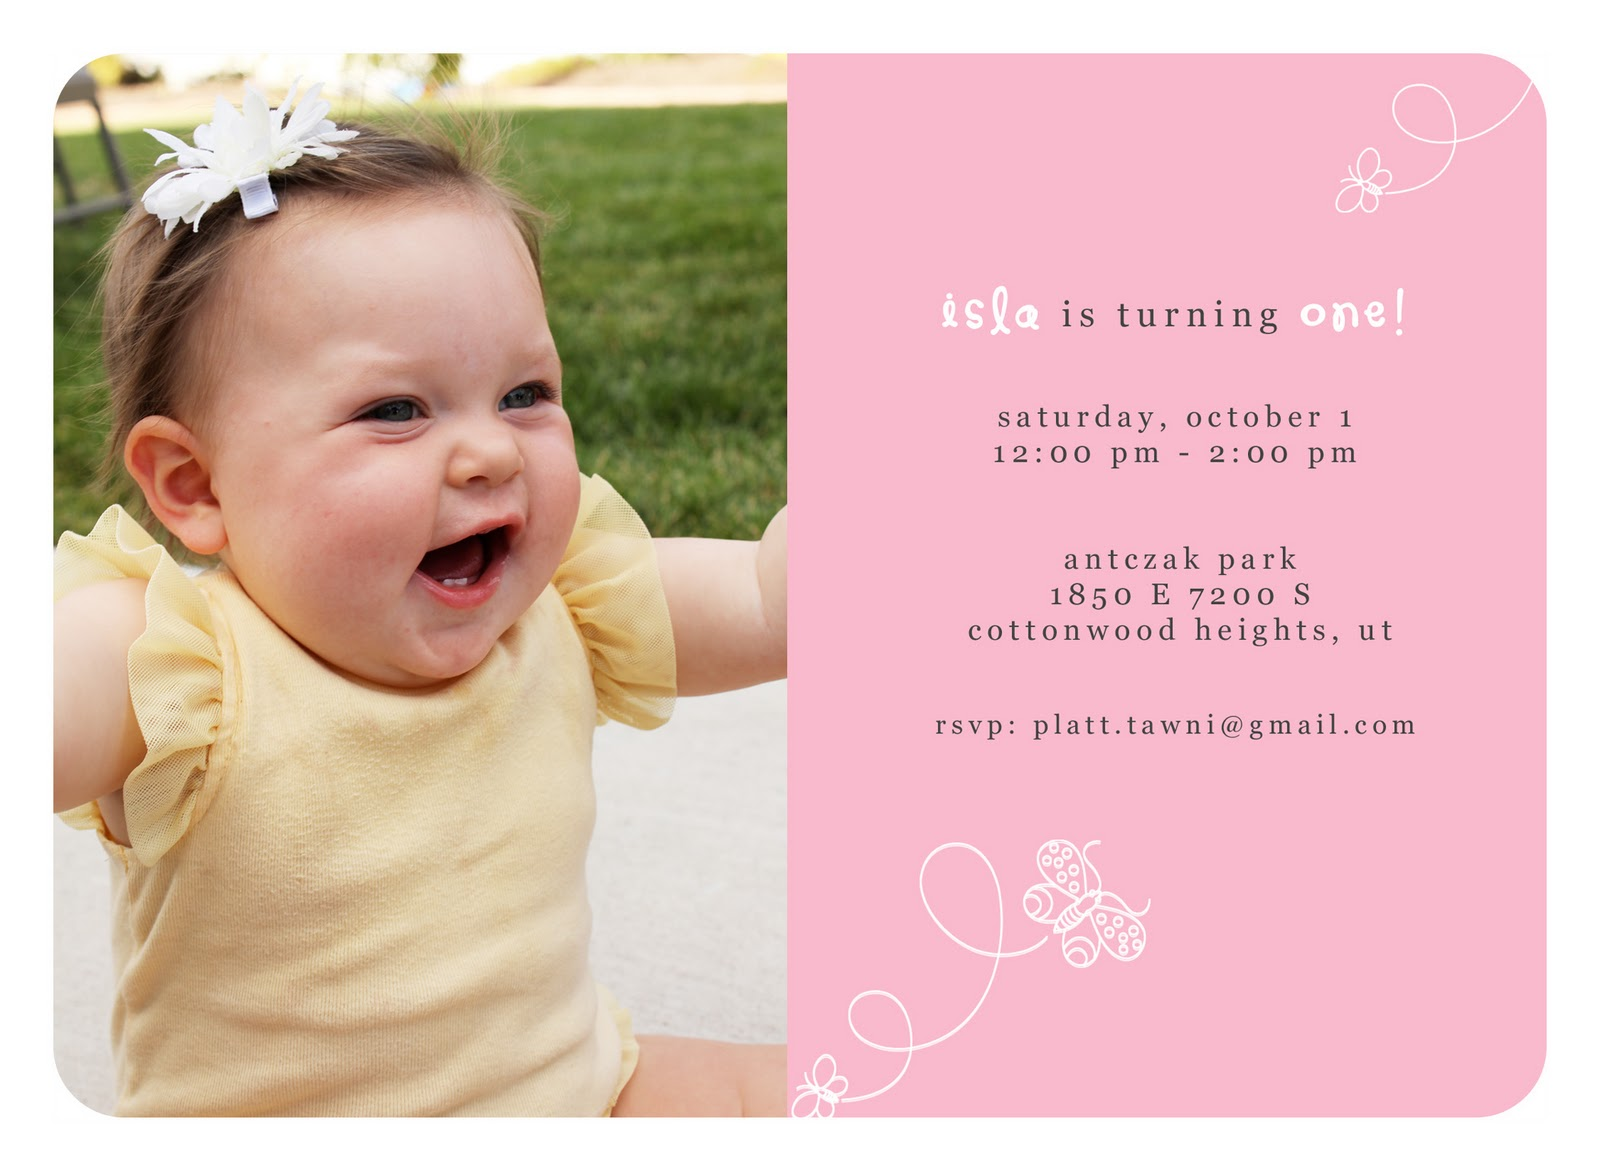 funny 1st birthday invitation wording ideas ; simple_1st_birthday_invitations_wording_ideas_6